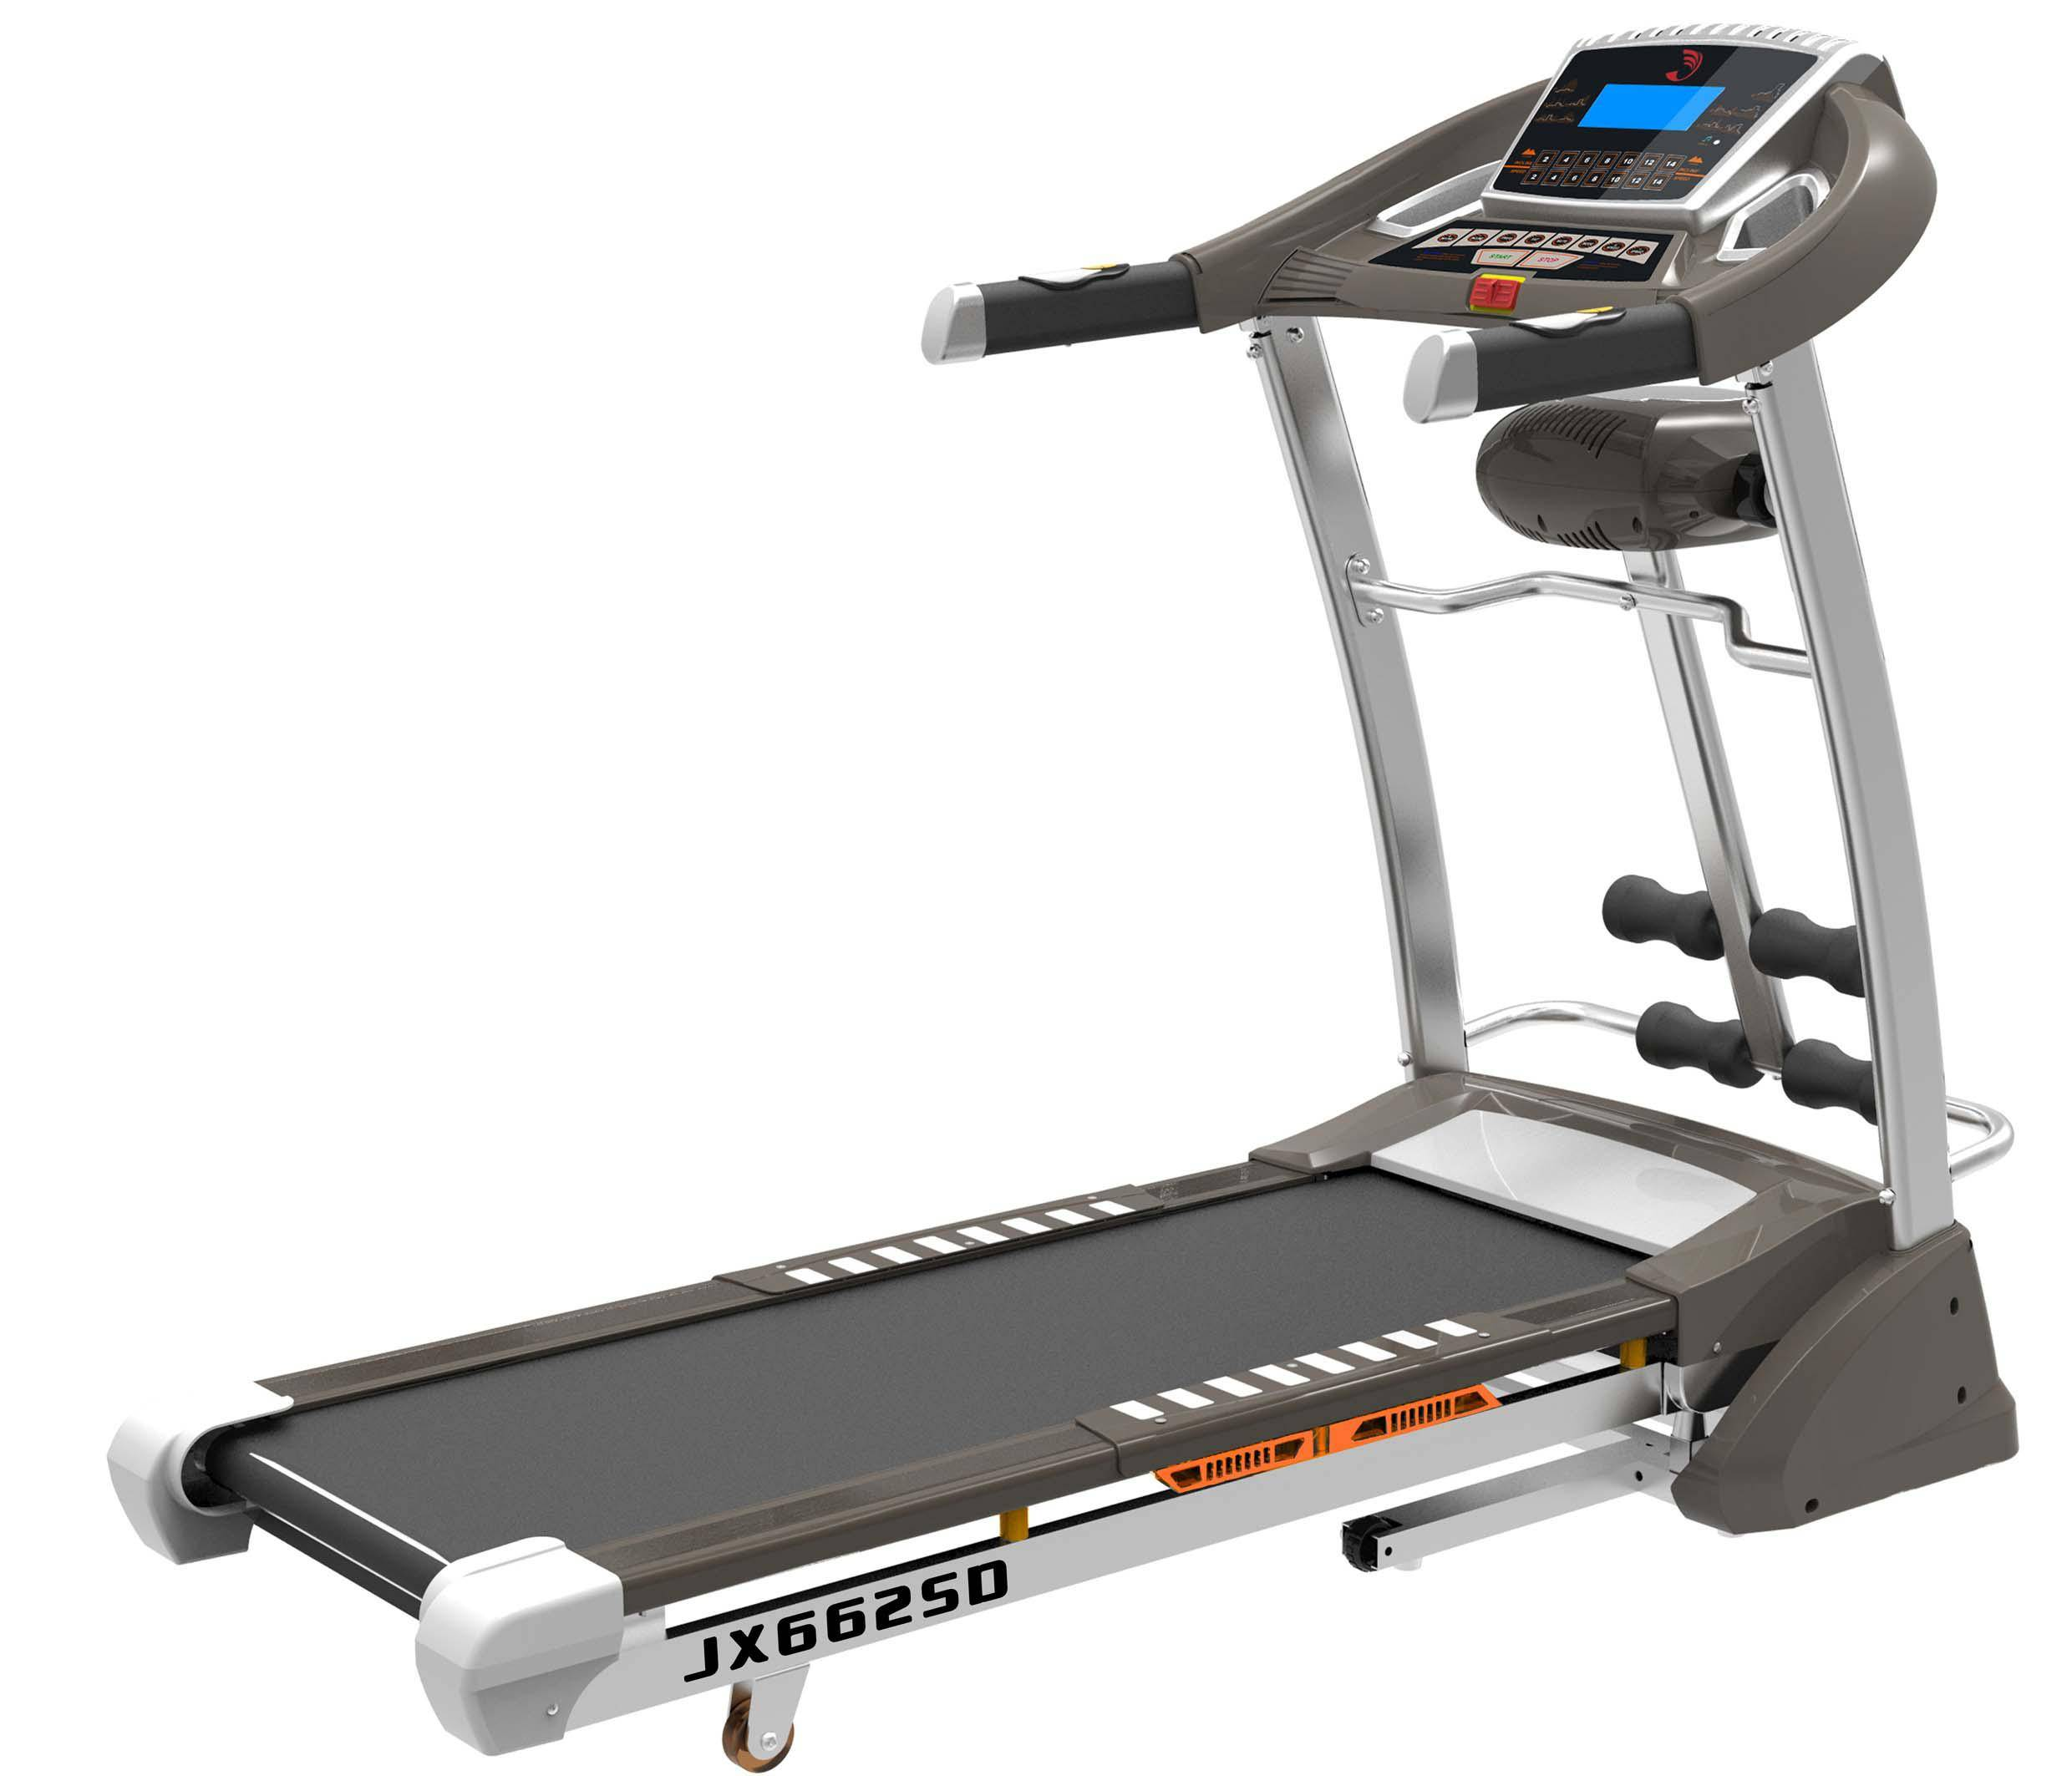 2015 hot sale dc motor cardio fitness equipment treadmill with en957 ce rohs sale